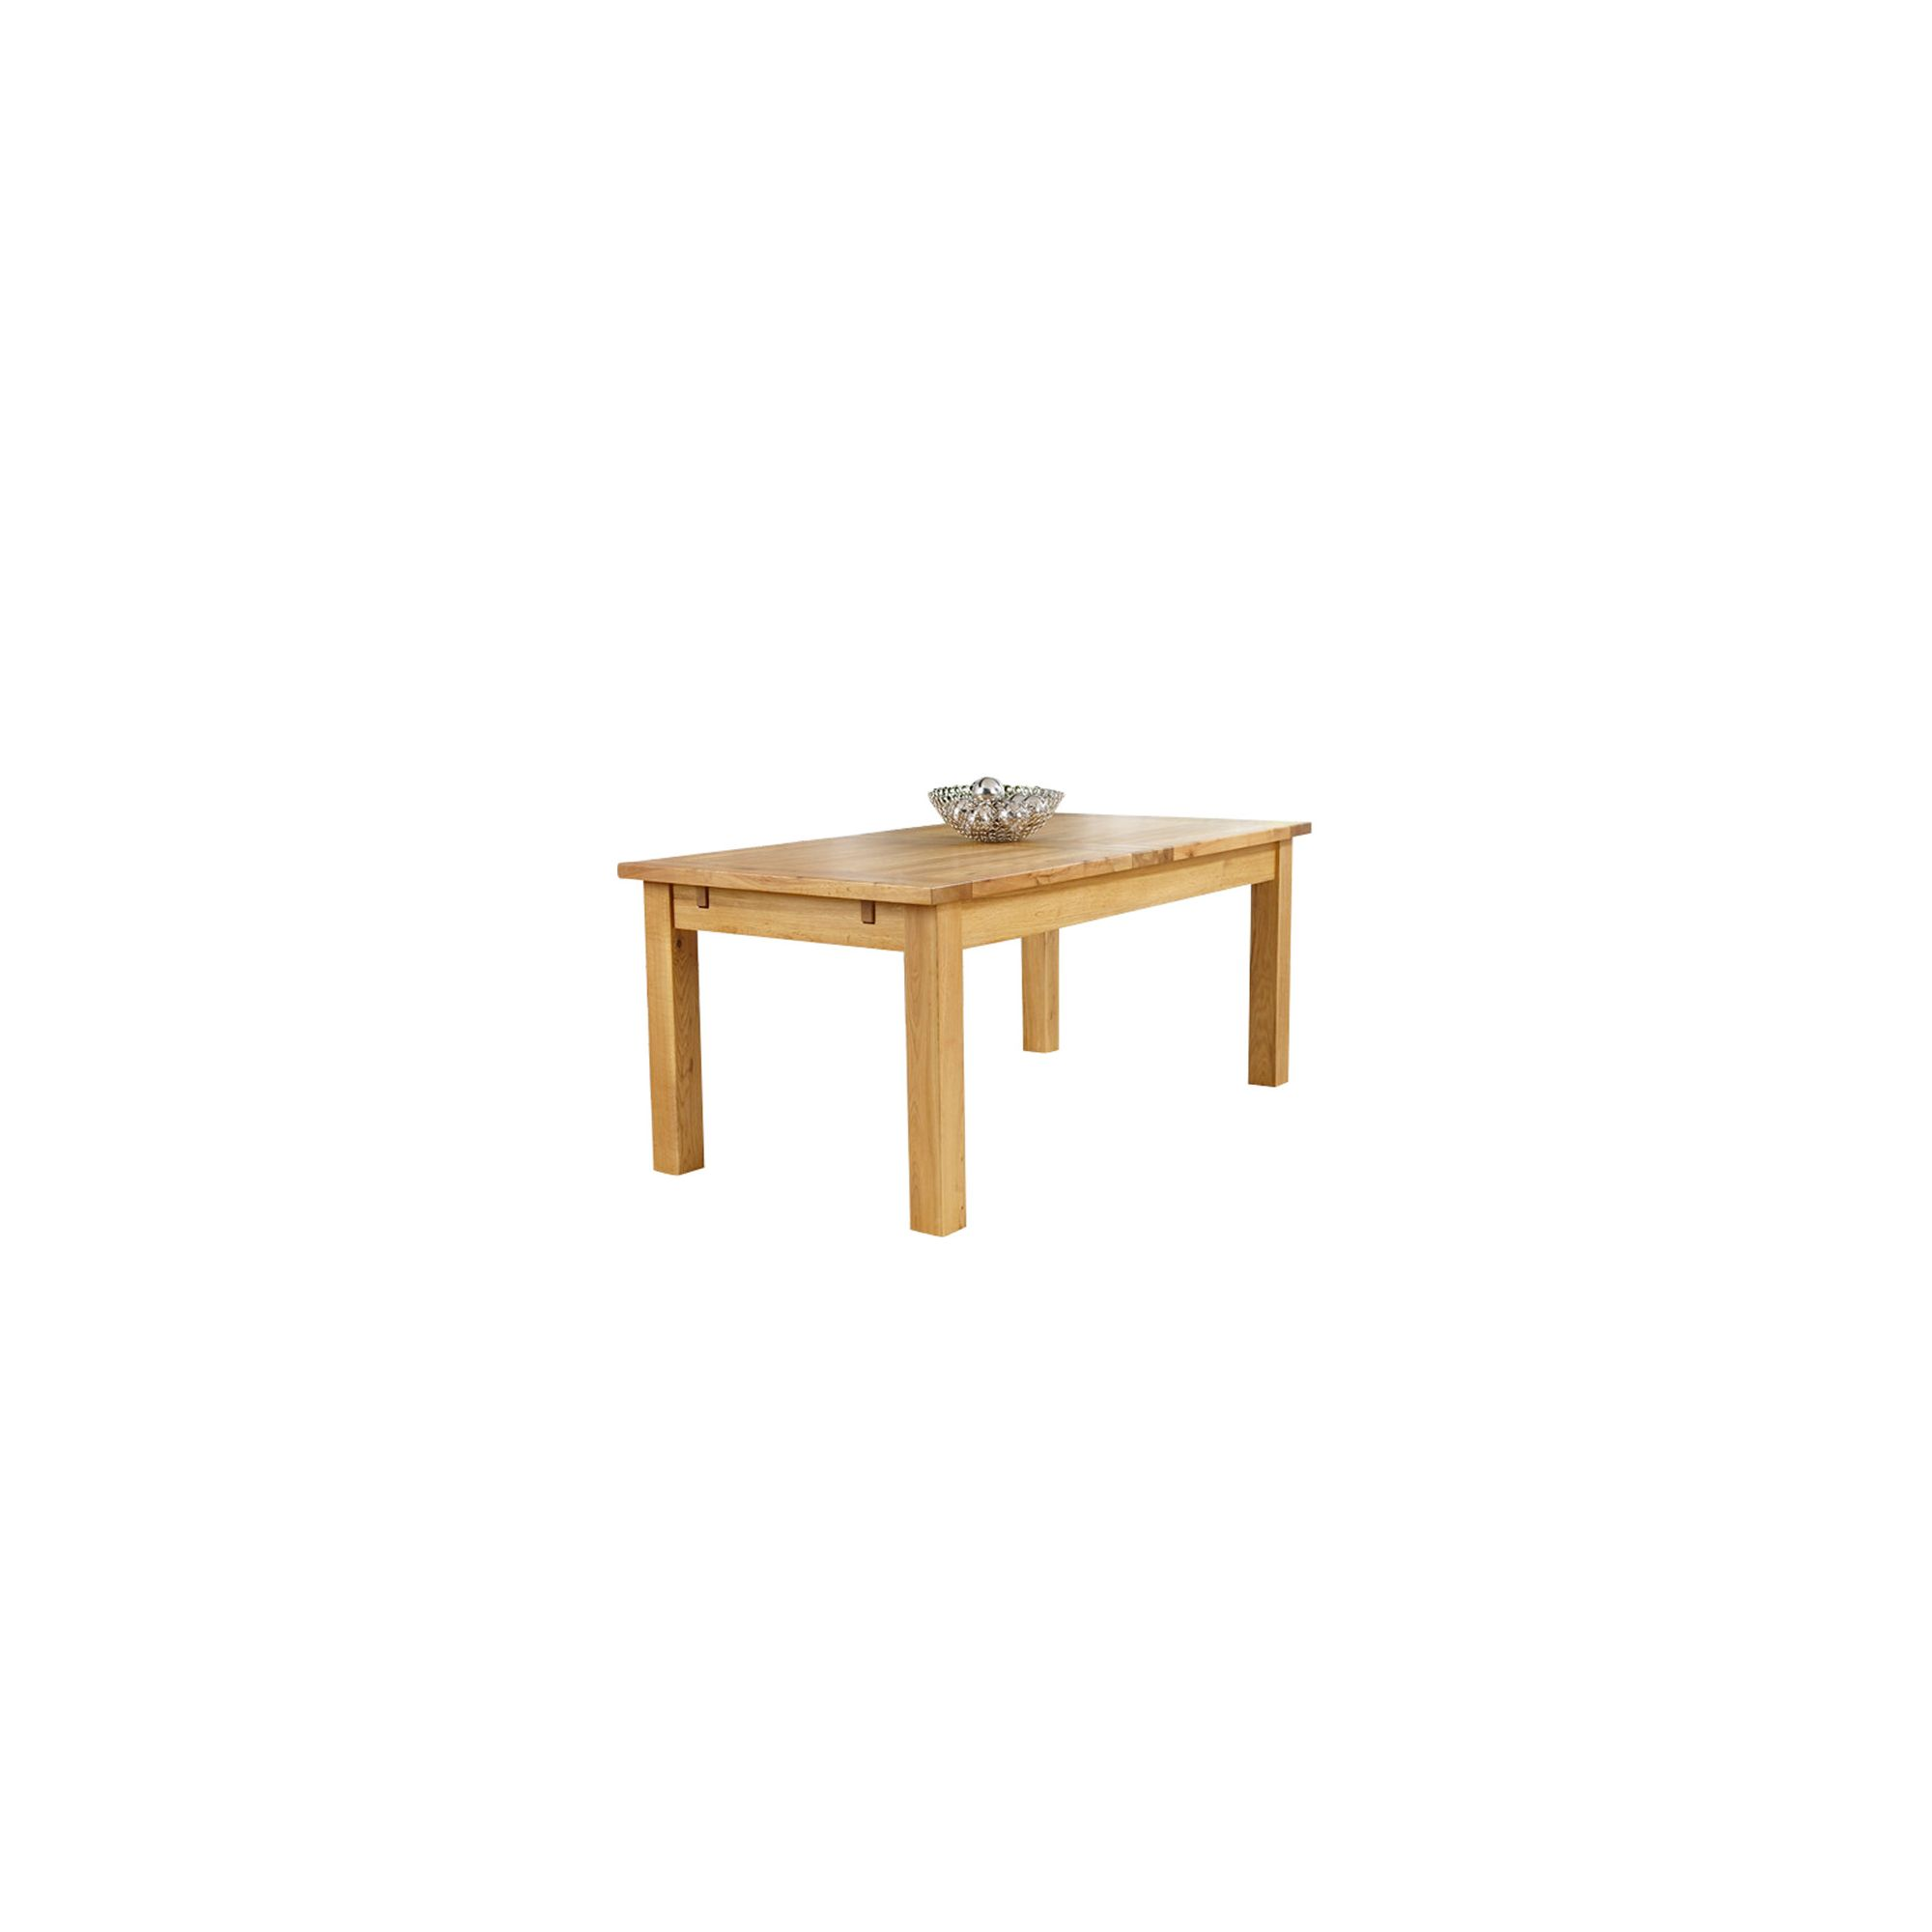 Mark Harris Furniture Rustique Classical Solid Oak Dining Table - 178 cm